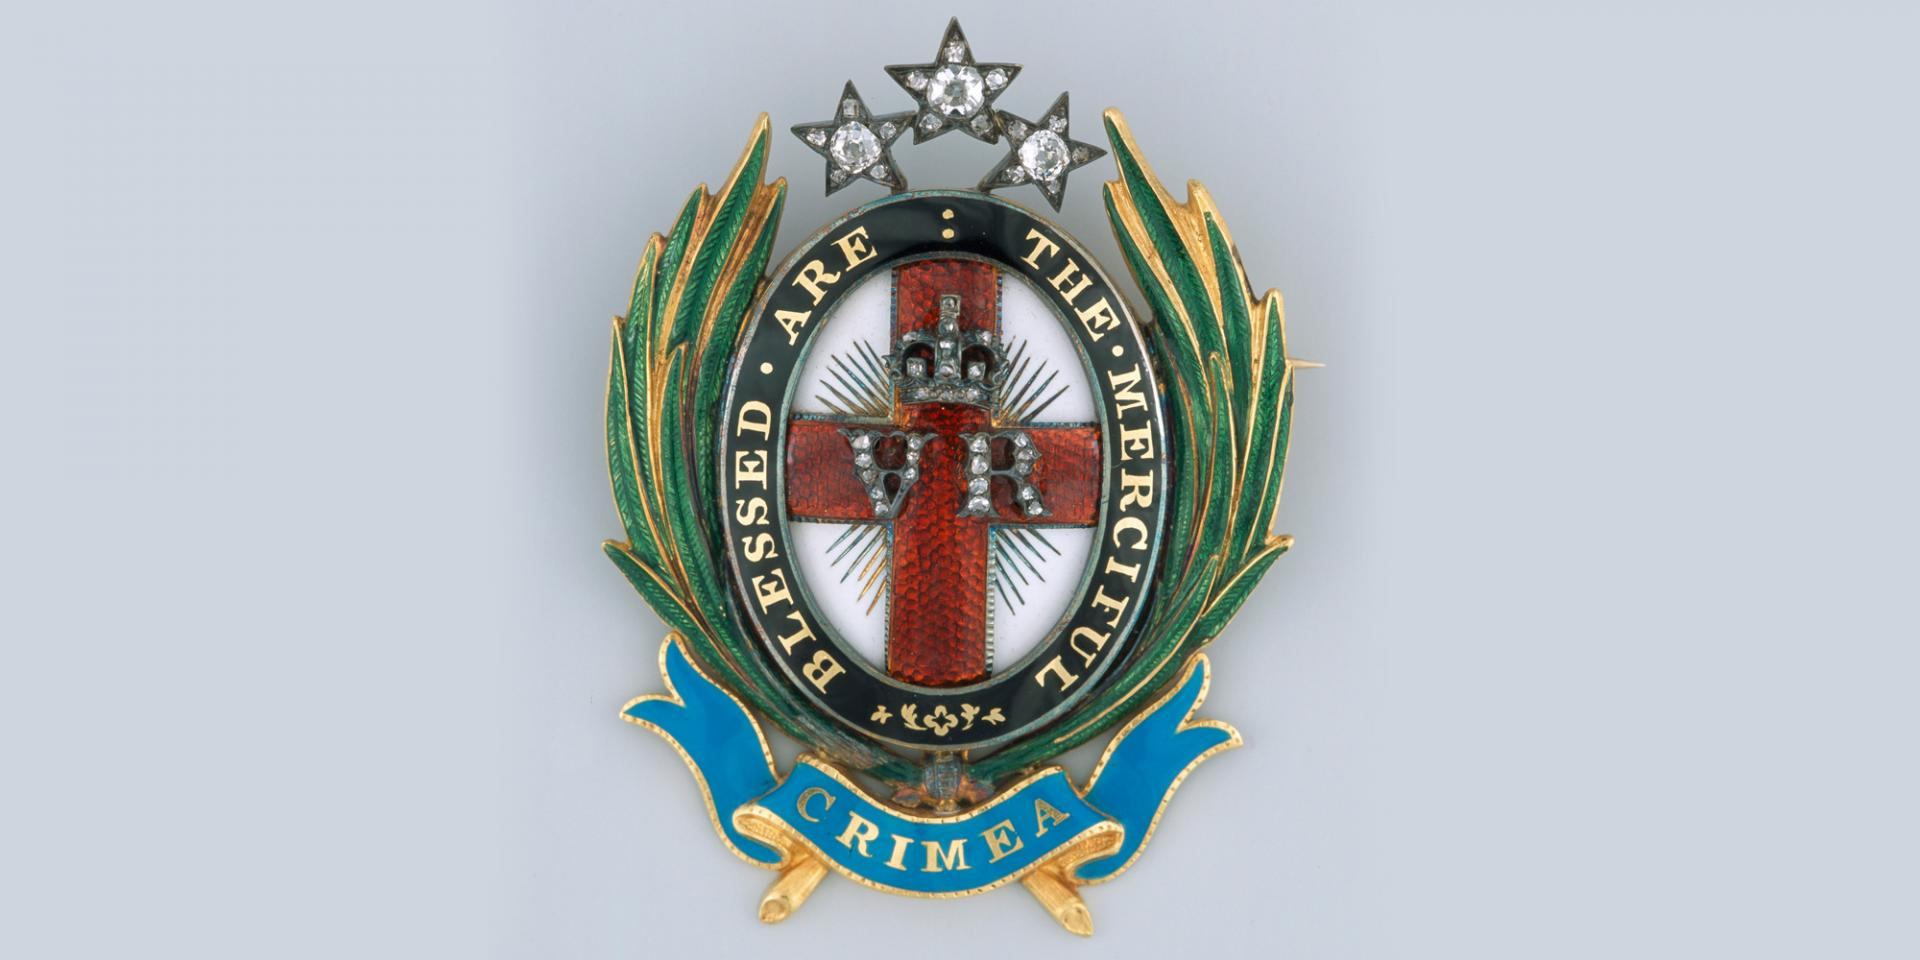 The Nightingale Jewel brooch given to Florence Nightingale by Queen Victoria in 1855